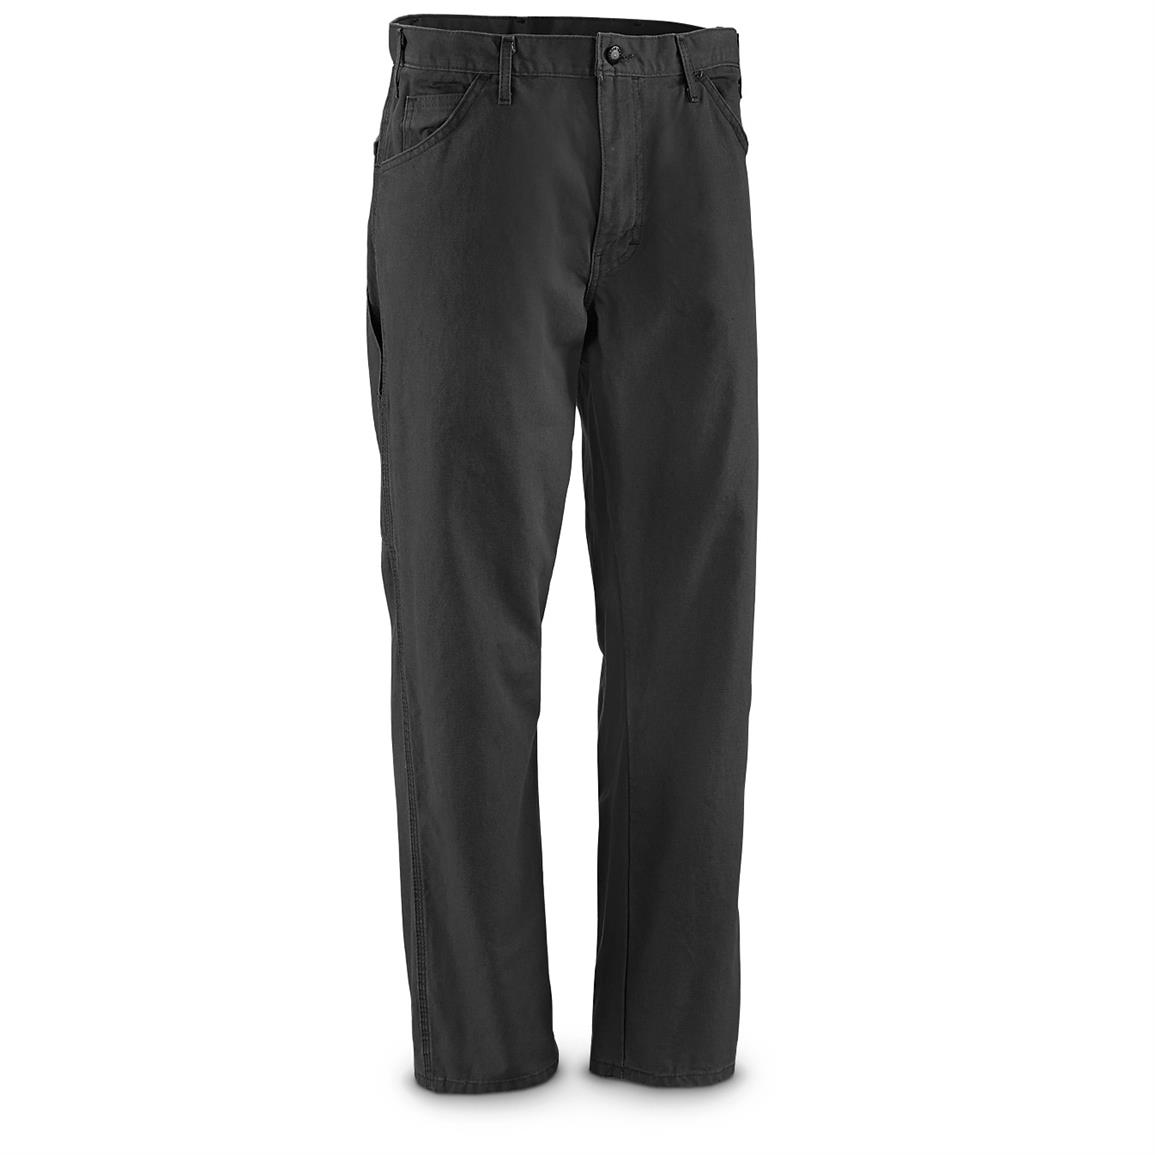 Dickies Men's Duck Utility Carpenter Pants, Slight Irregulars, Black